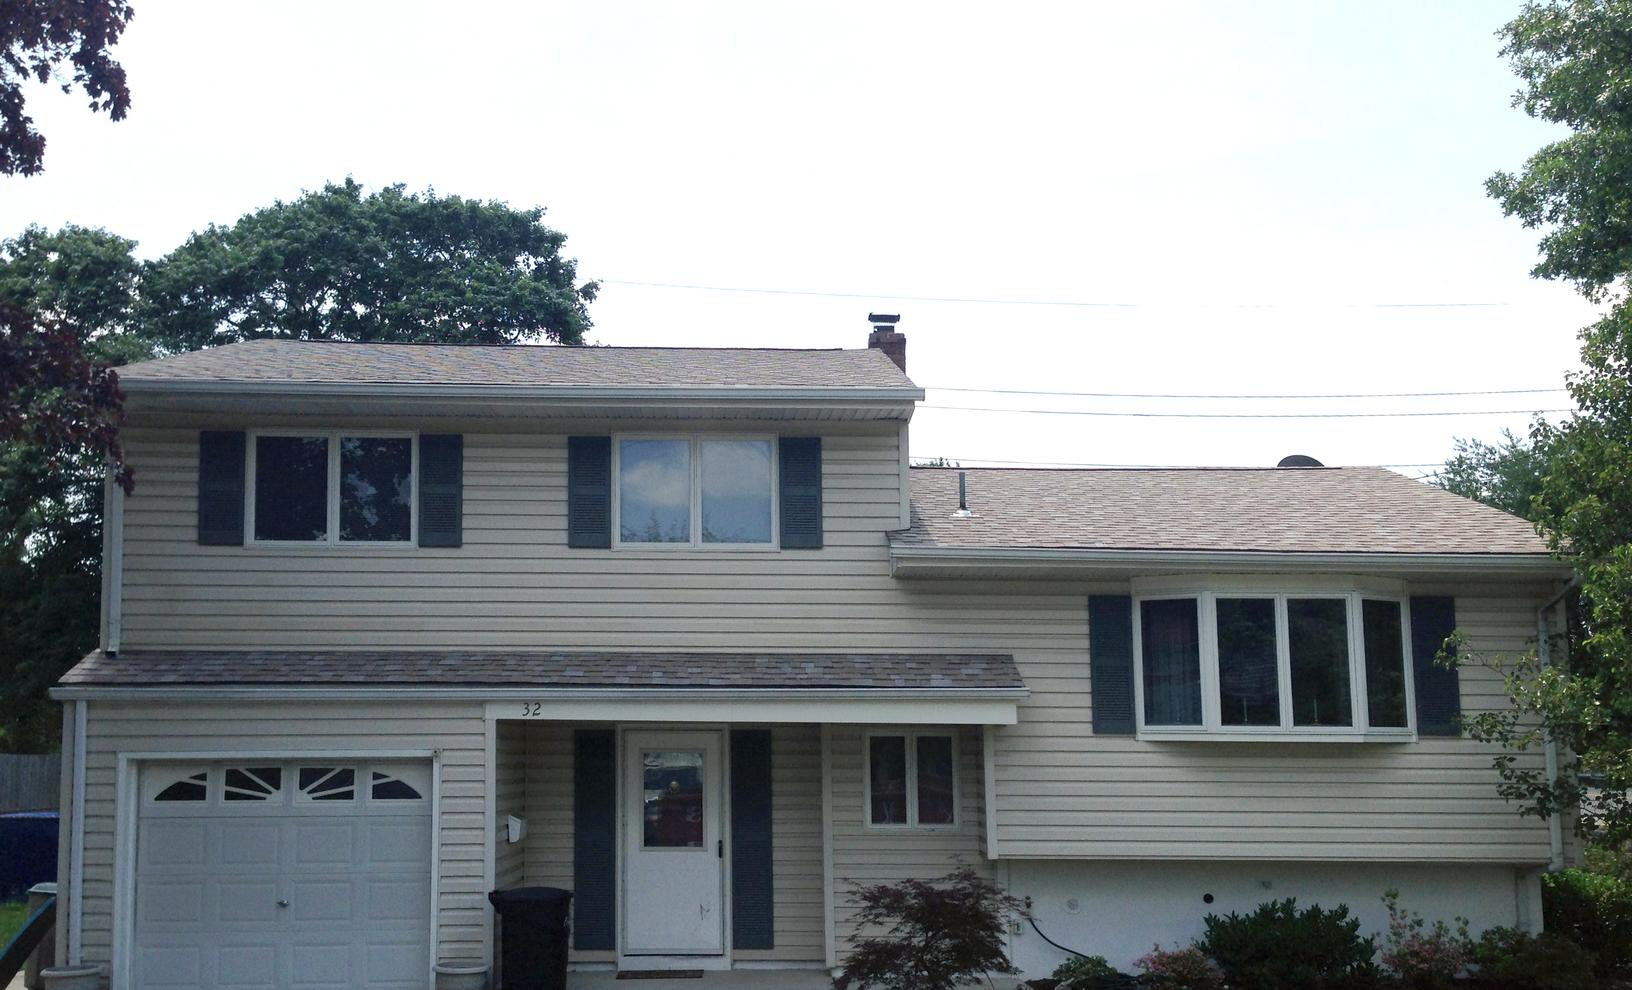 Roof Replacement with Amber Color in Milltown NJ - After Photo